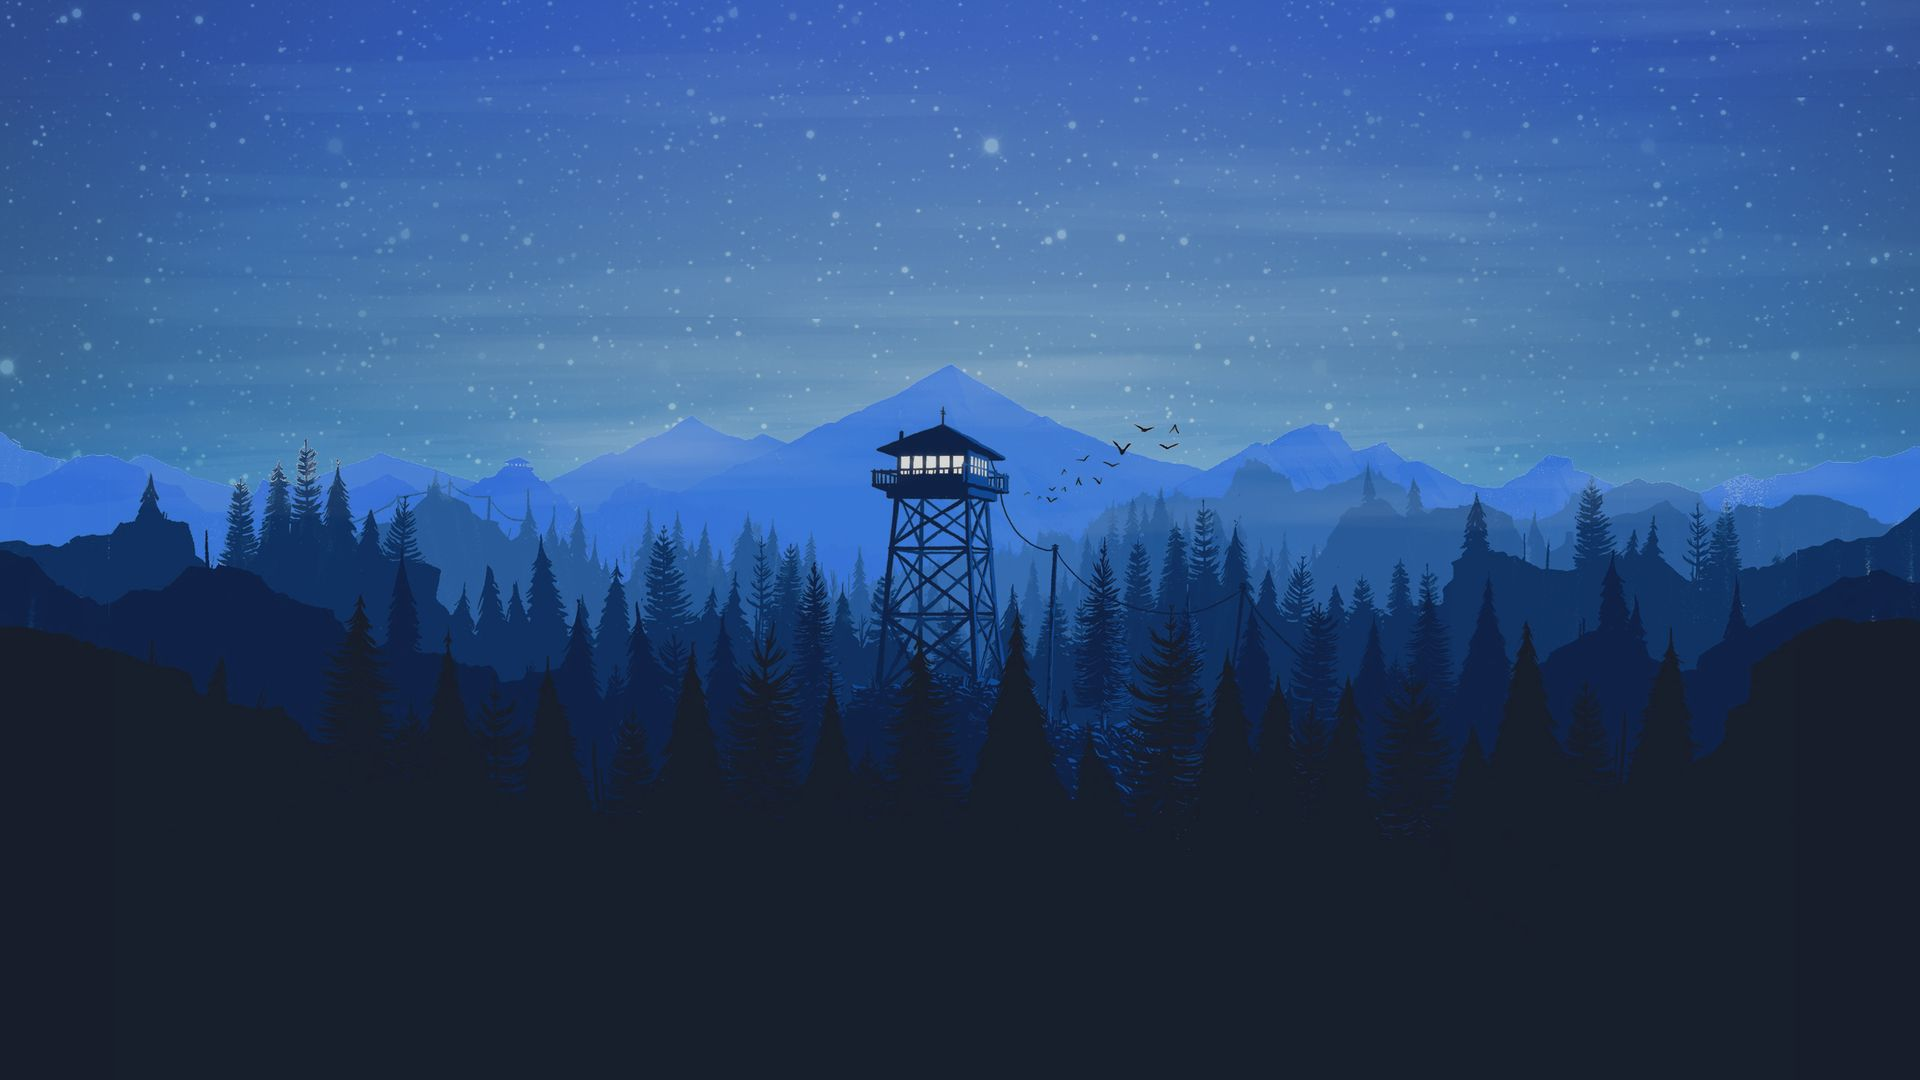 The Wallpaper Of Iphone Firewatch, Firewatch Pictures